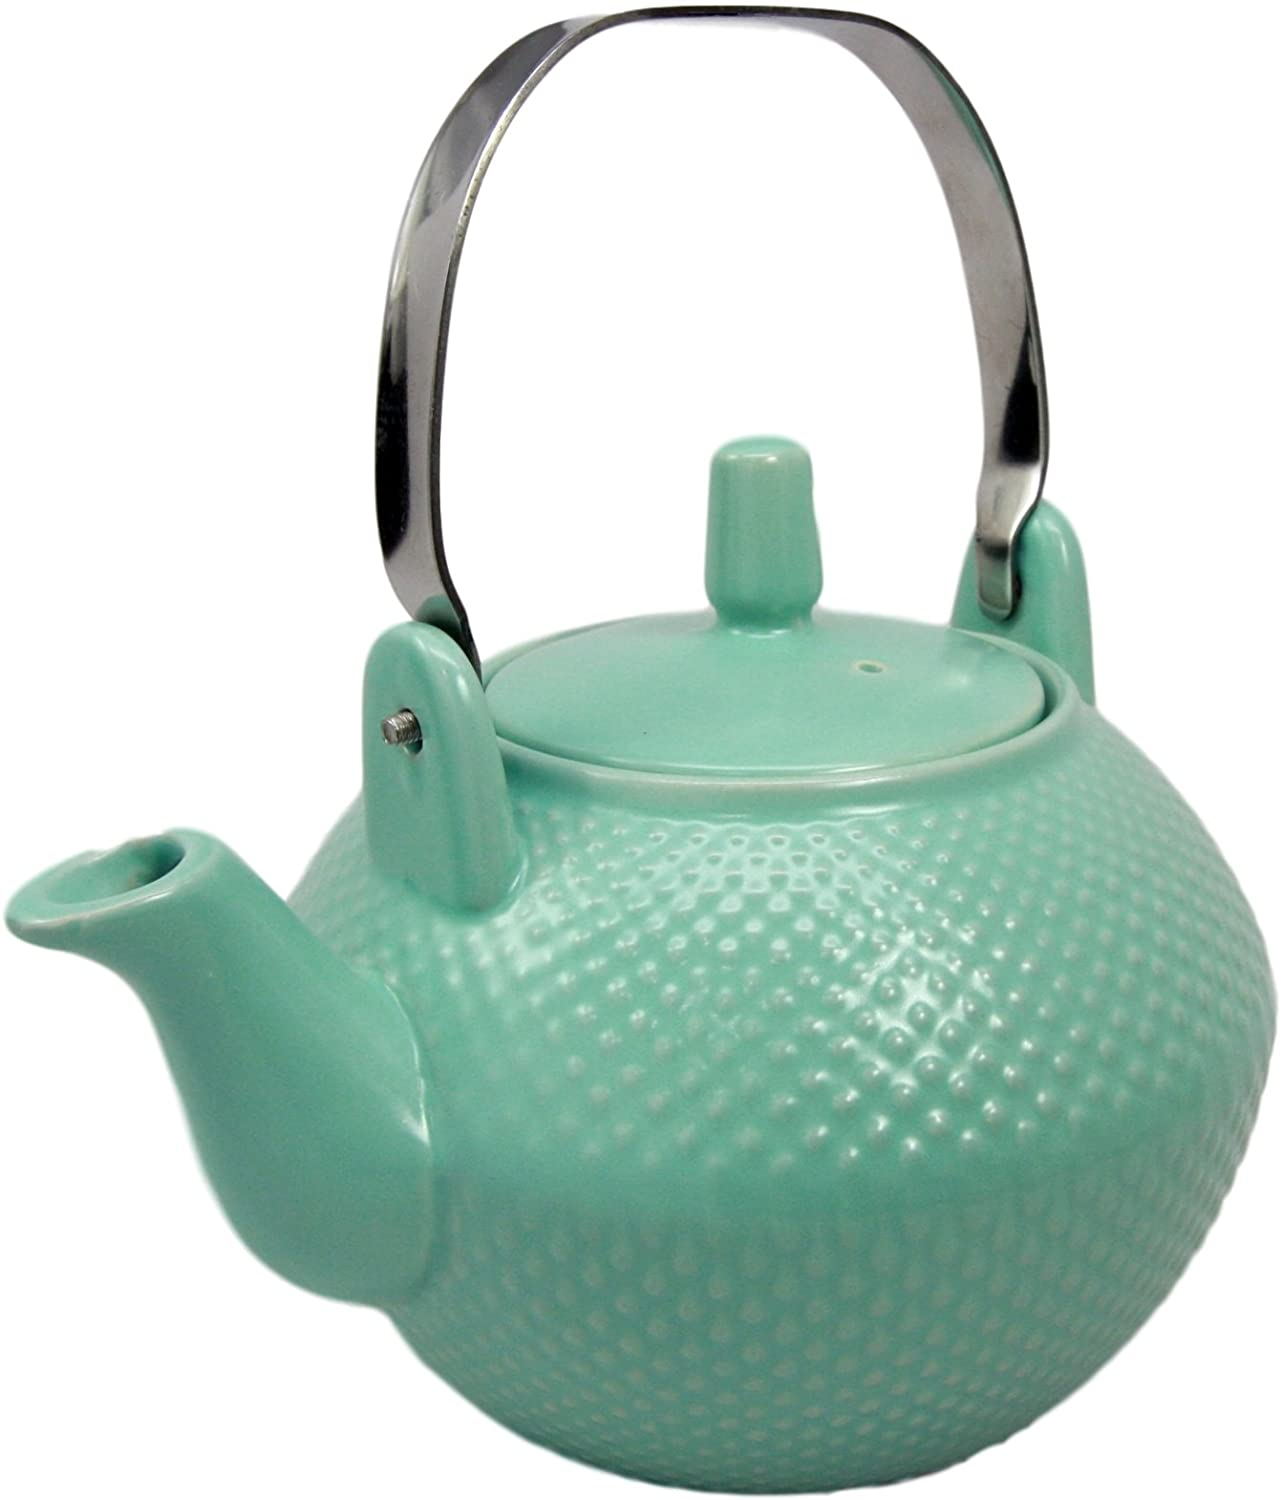 Ebros Gift Imperial Spotted Texture Teapot With Stainless Steel Handle 28oz (Aquamarine Blue)